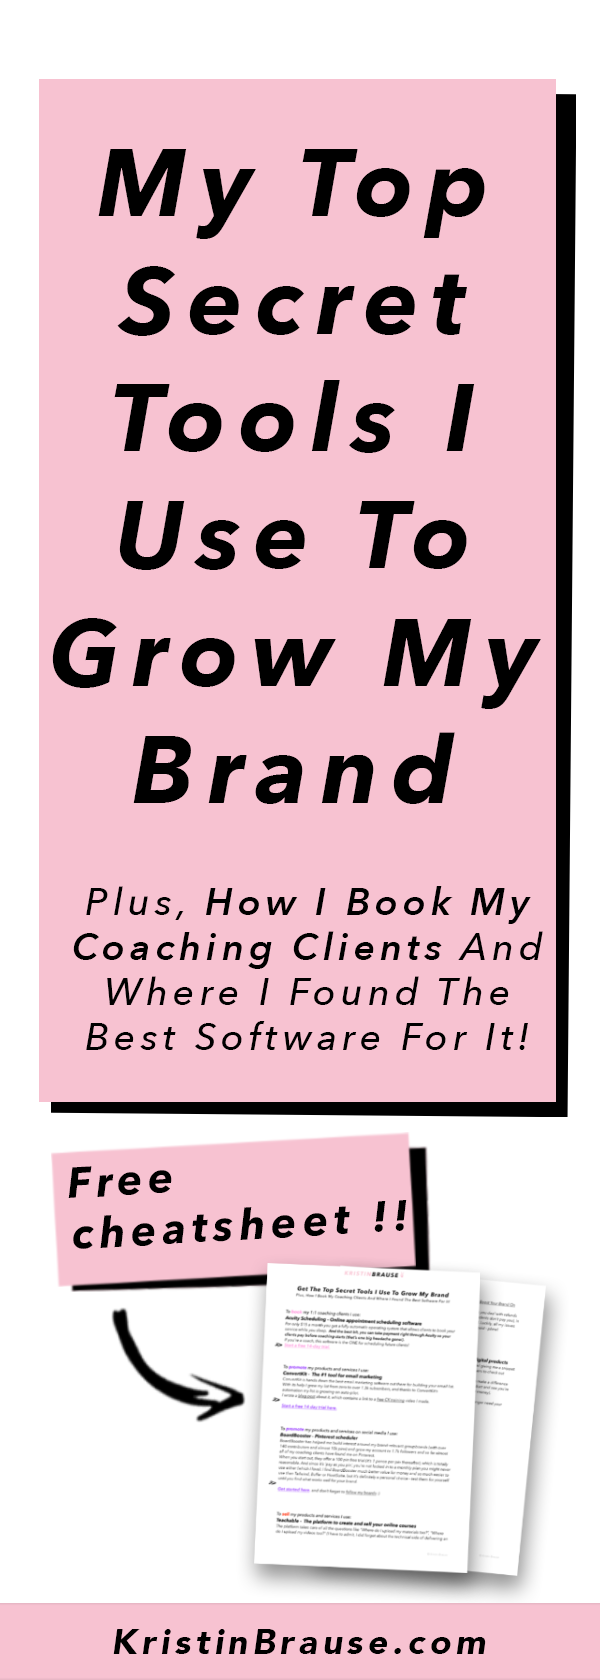 Get-The-Top-Secret-Tools-I-Use-To-Grow-My-Brand.png